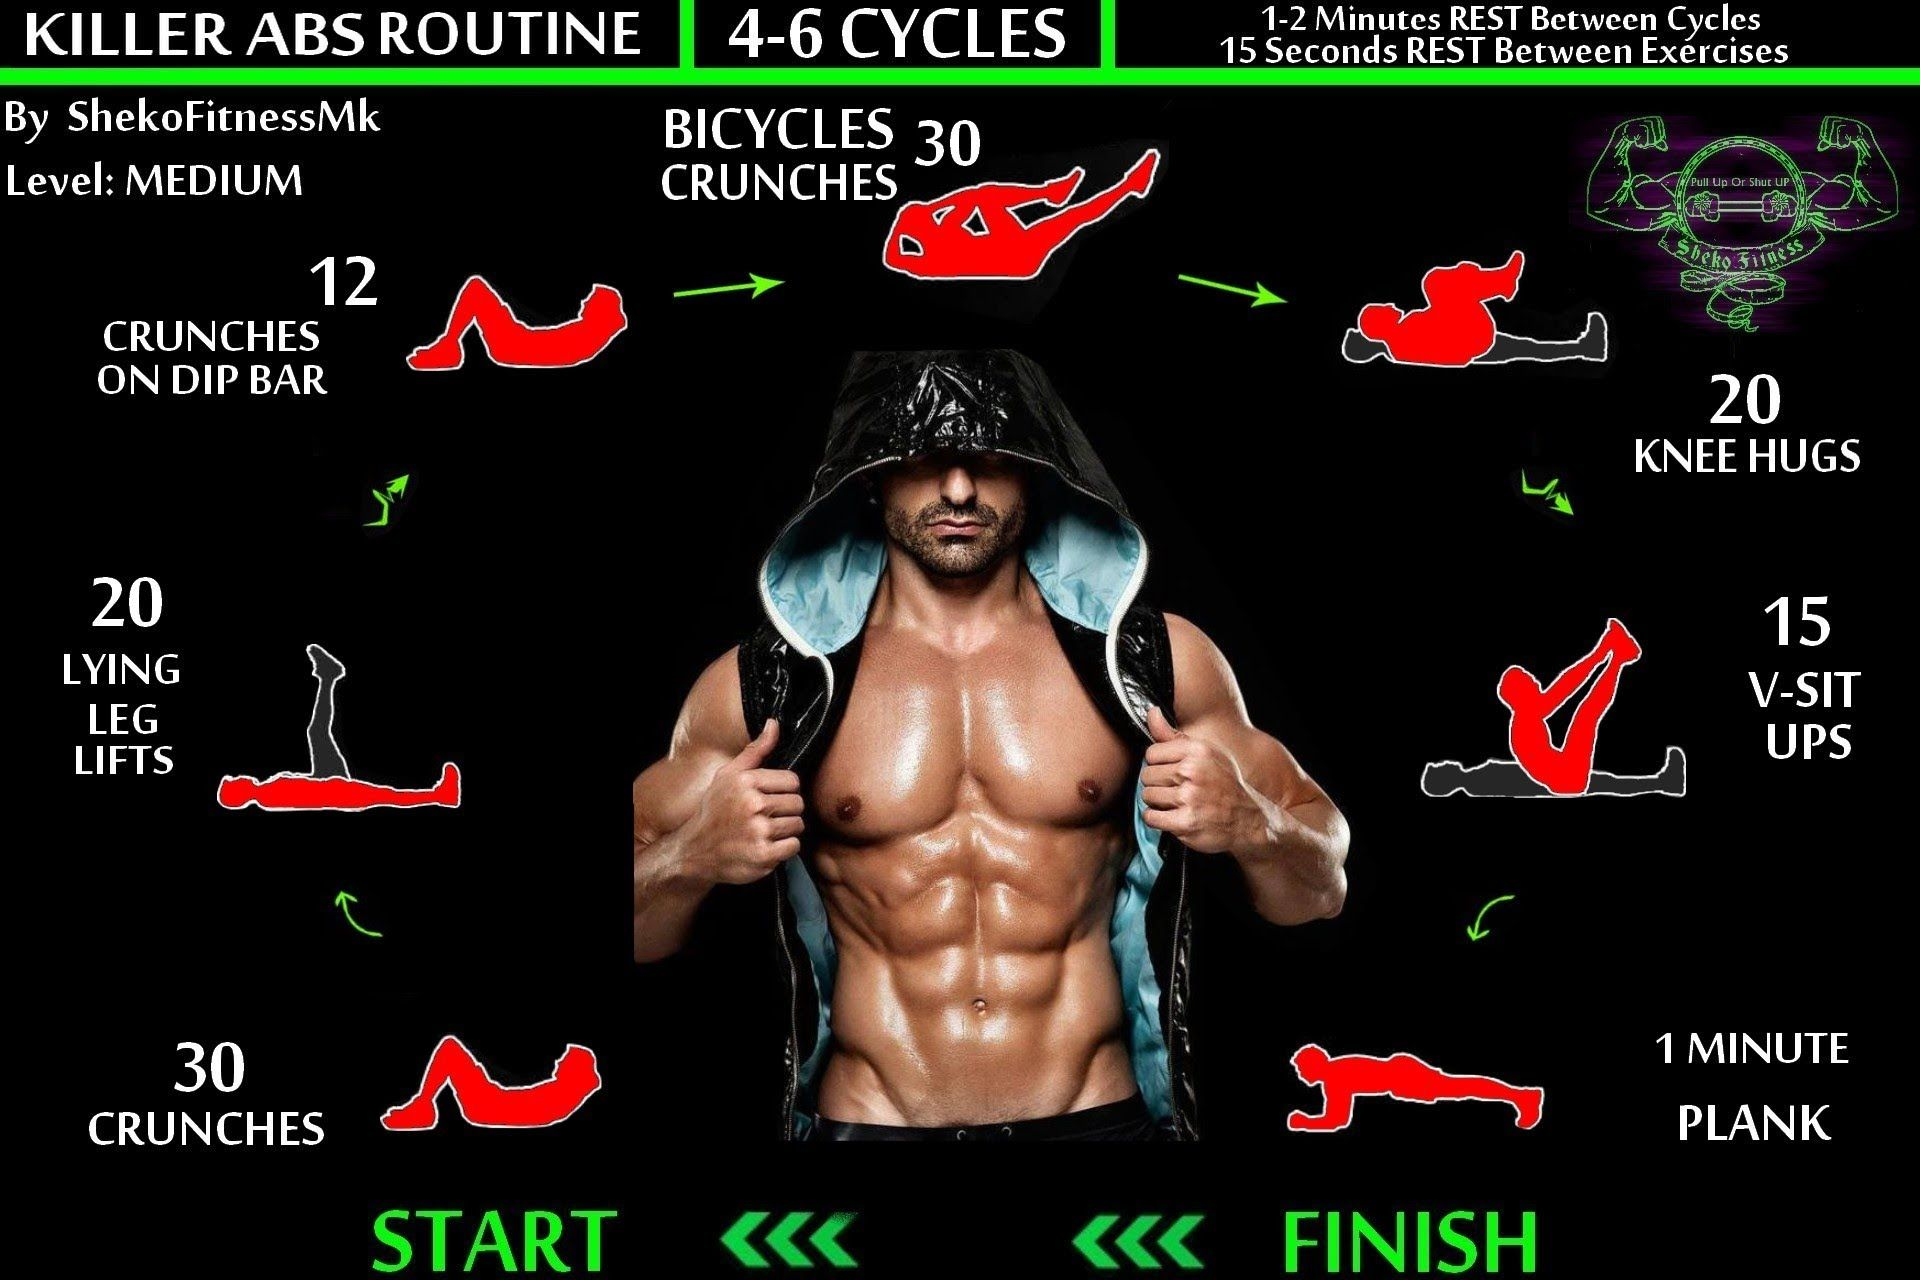 Killer ABS Workout - Six Pack Routine | Calisthenics Ab ...